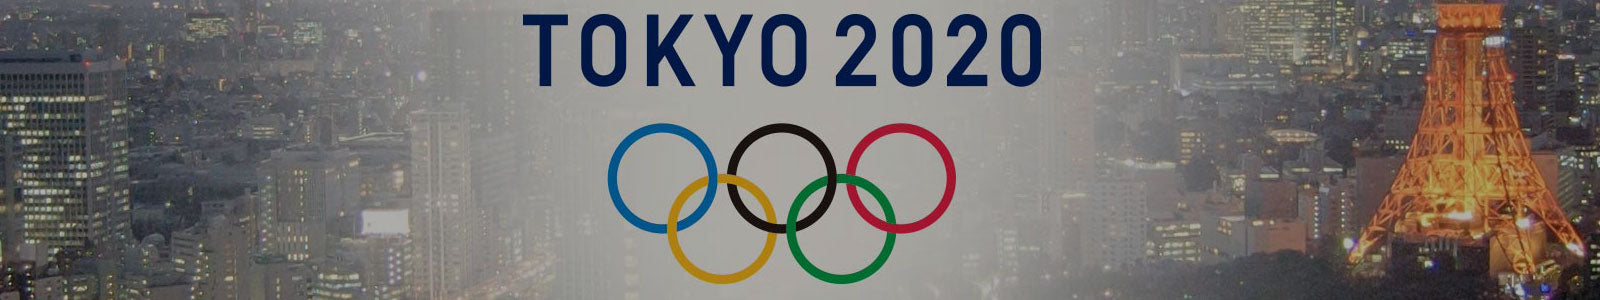 Tokyo 2020 Olympic Rugby Sevens - Qualifiers & Schedule